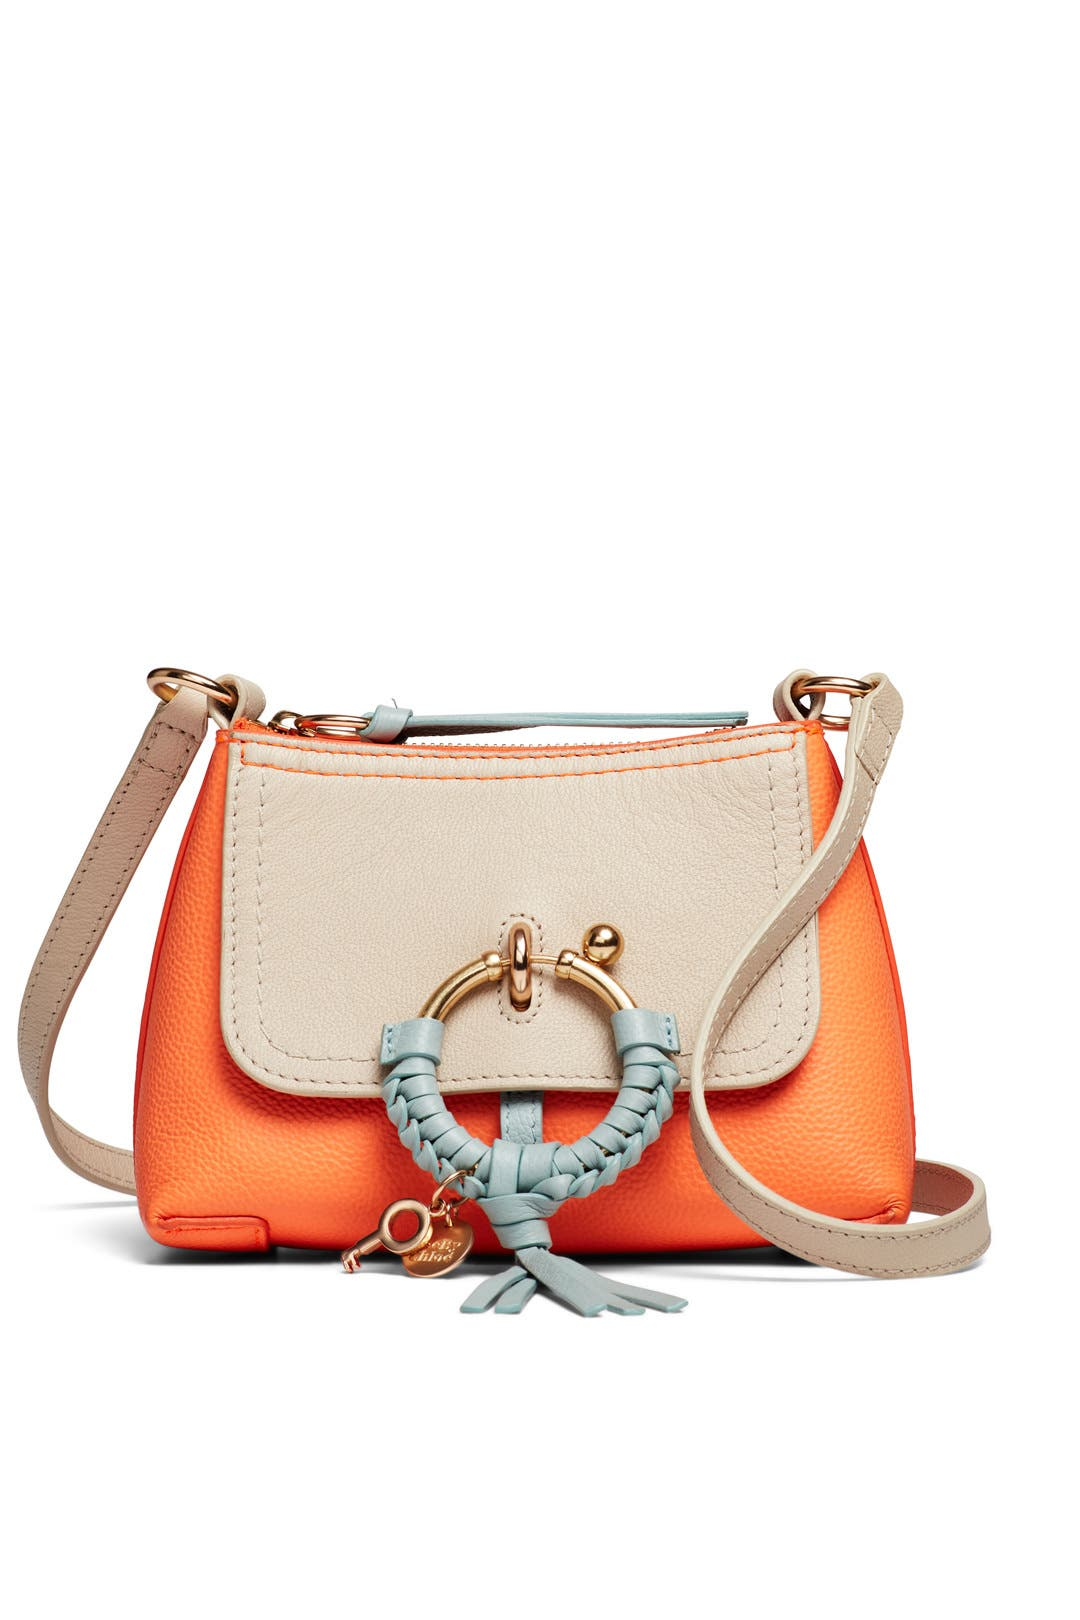 See by Chloe Accessories Joan Mini Bag